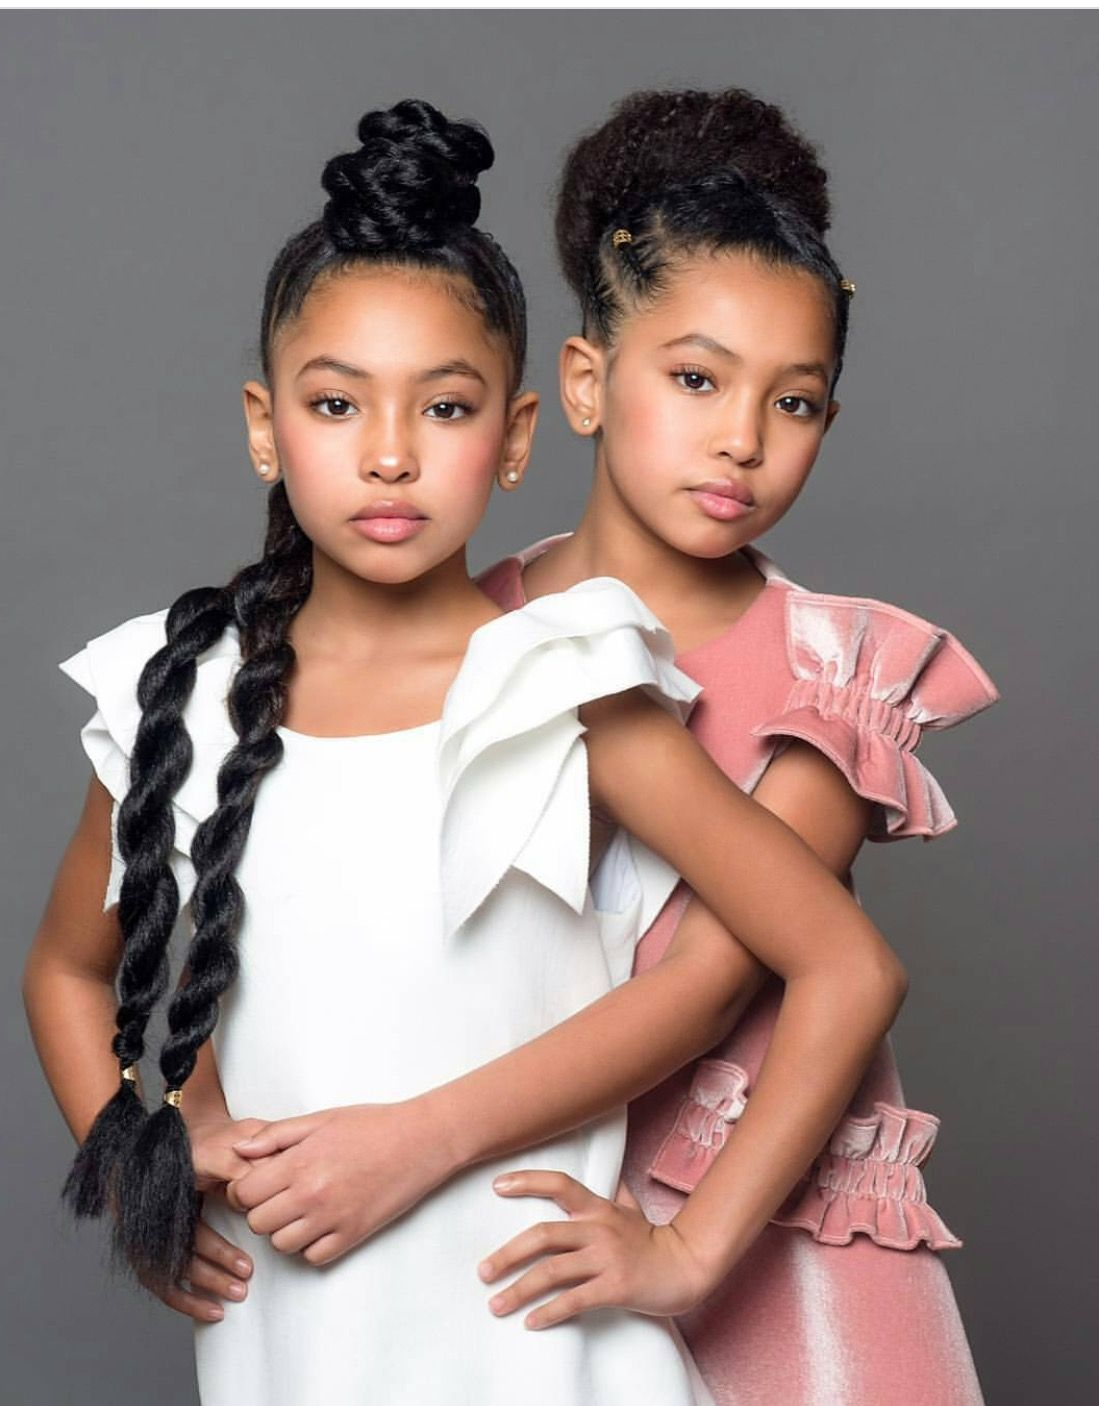 Watch 11 Adorable Photos of Celebrities Twinning With Their Kids video